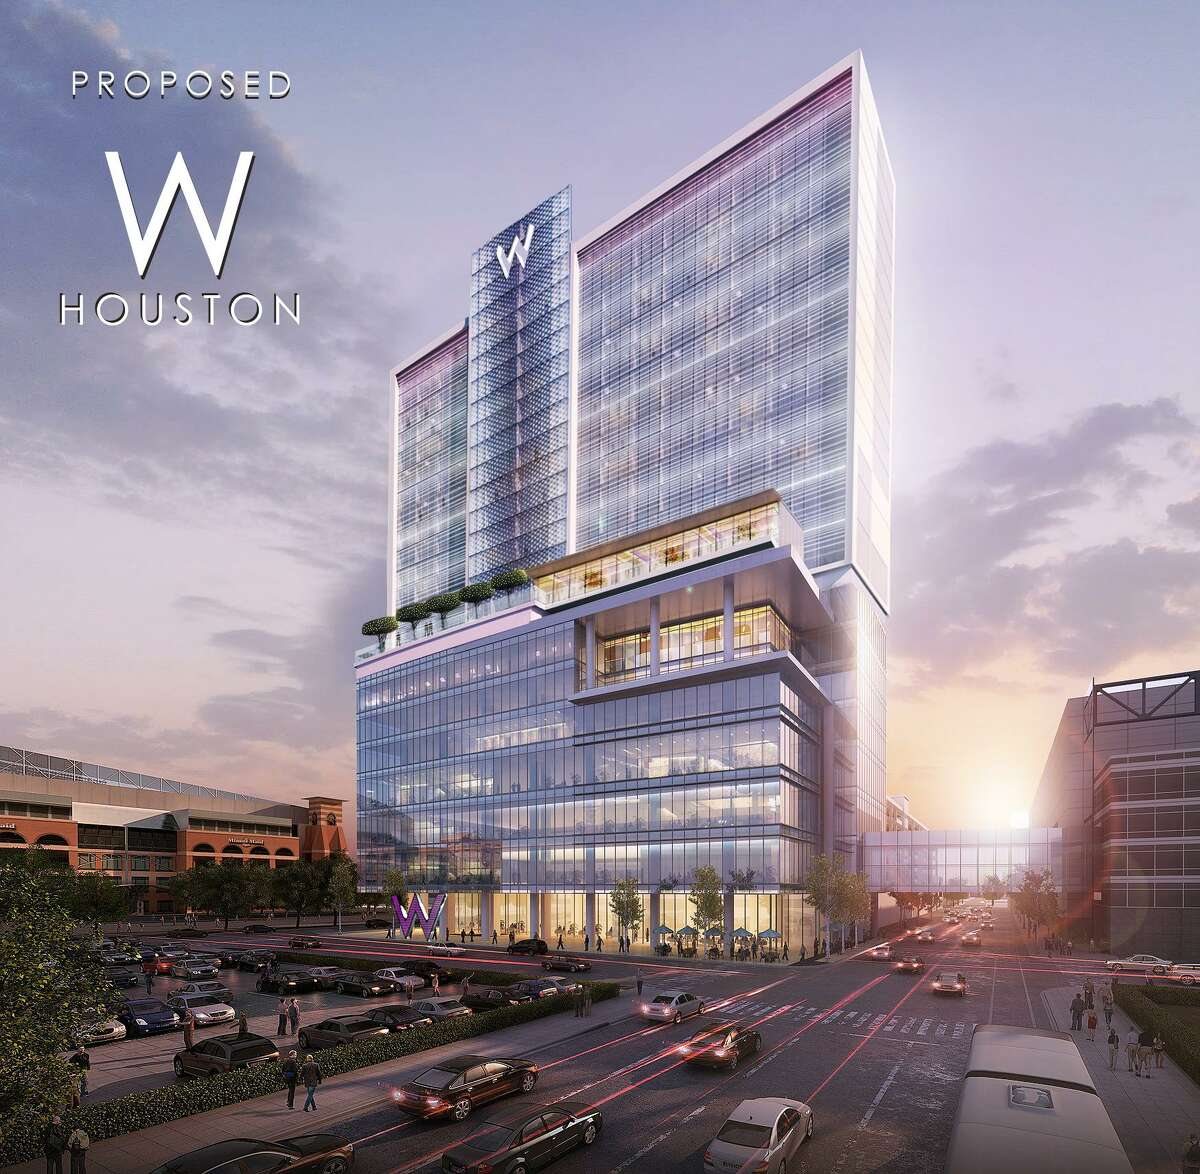 State and city officials in Houston are mulling a tax incentive package worth $42.6 million to developers to build a $120 million W Hotel in downtown Houston.